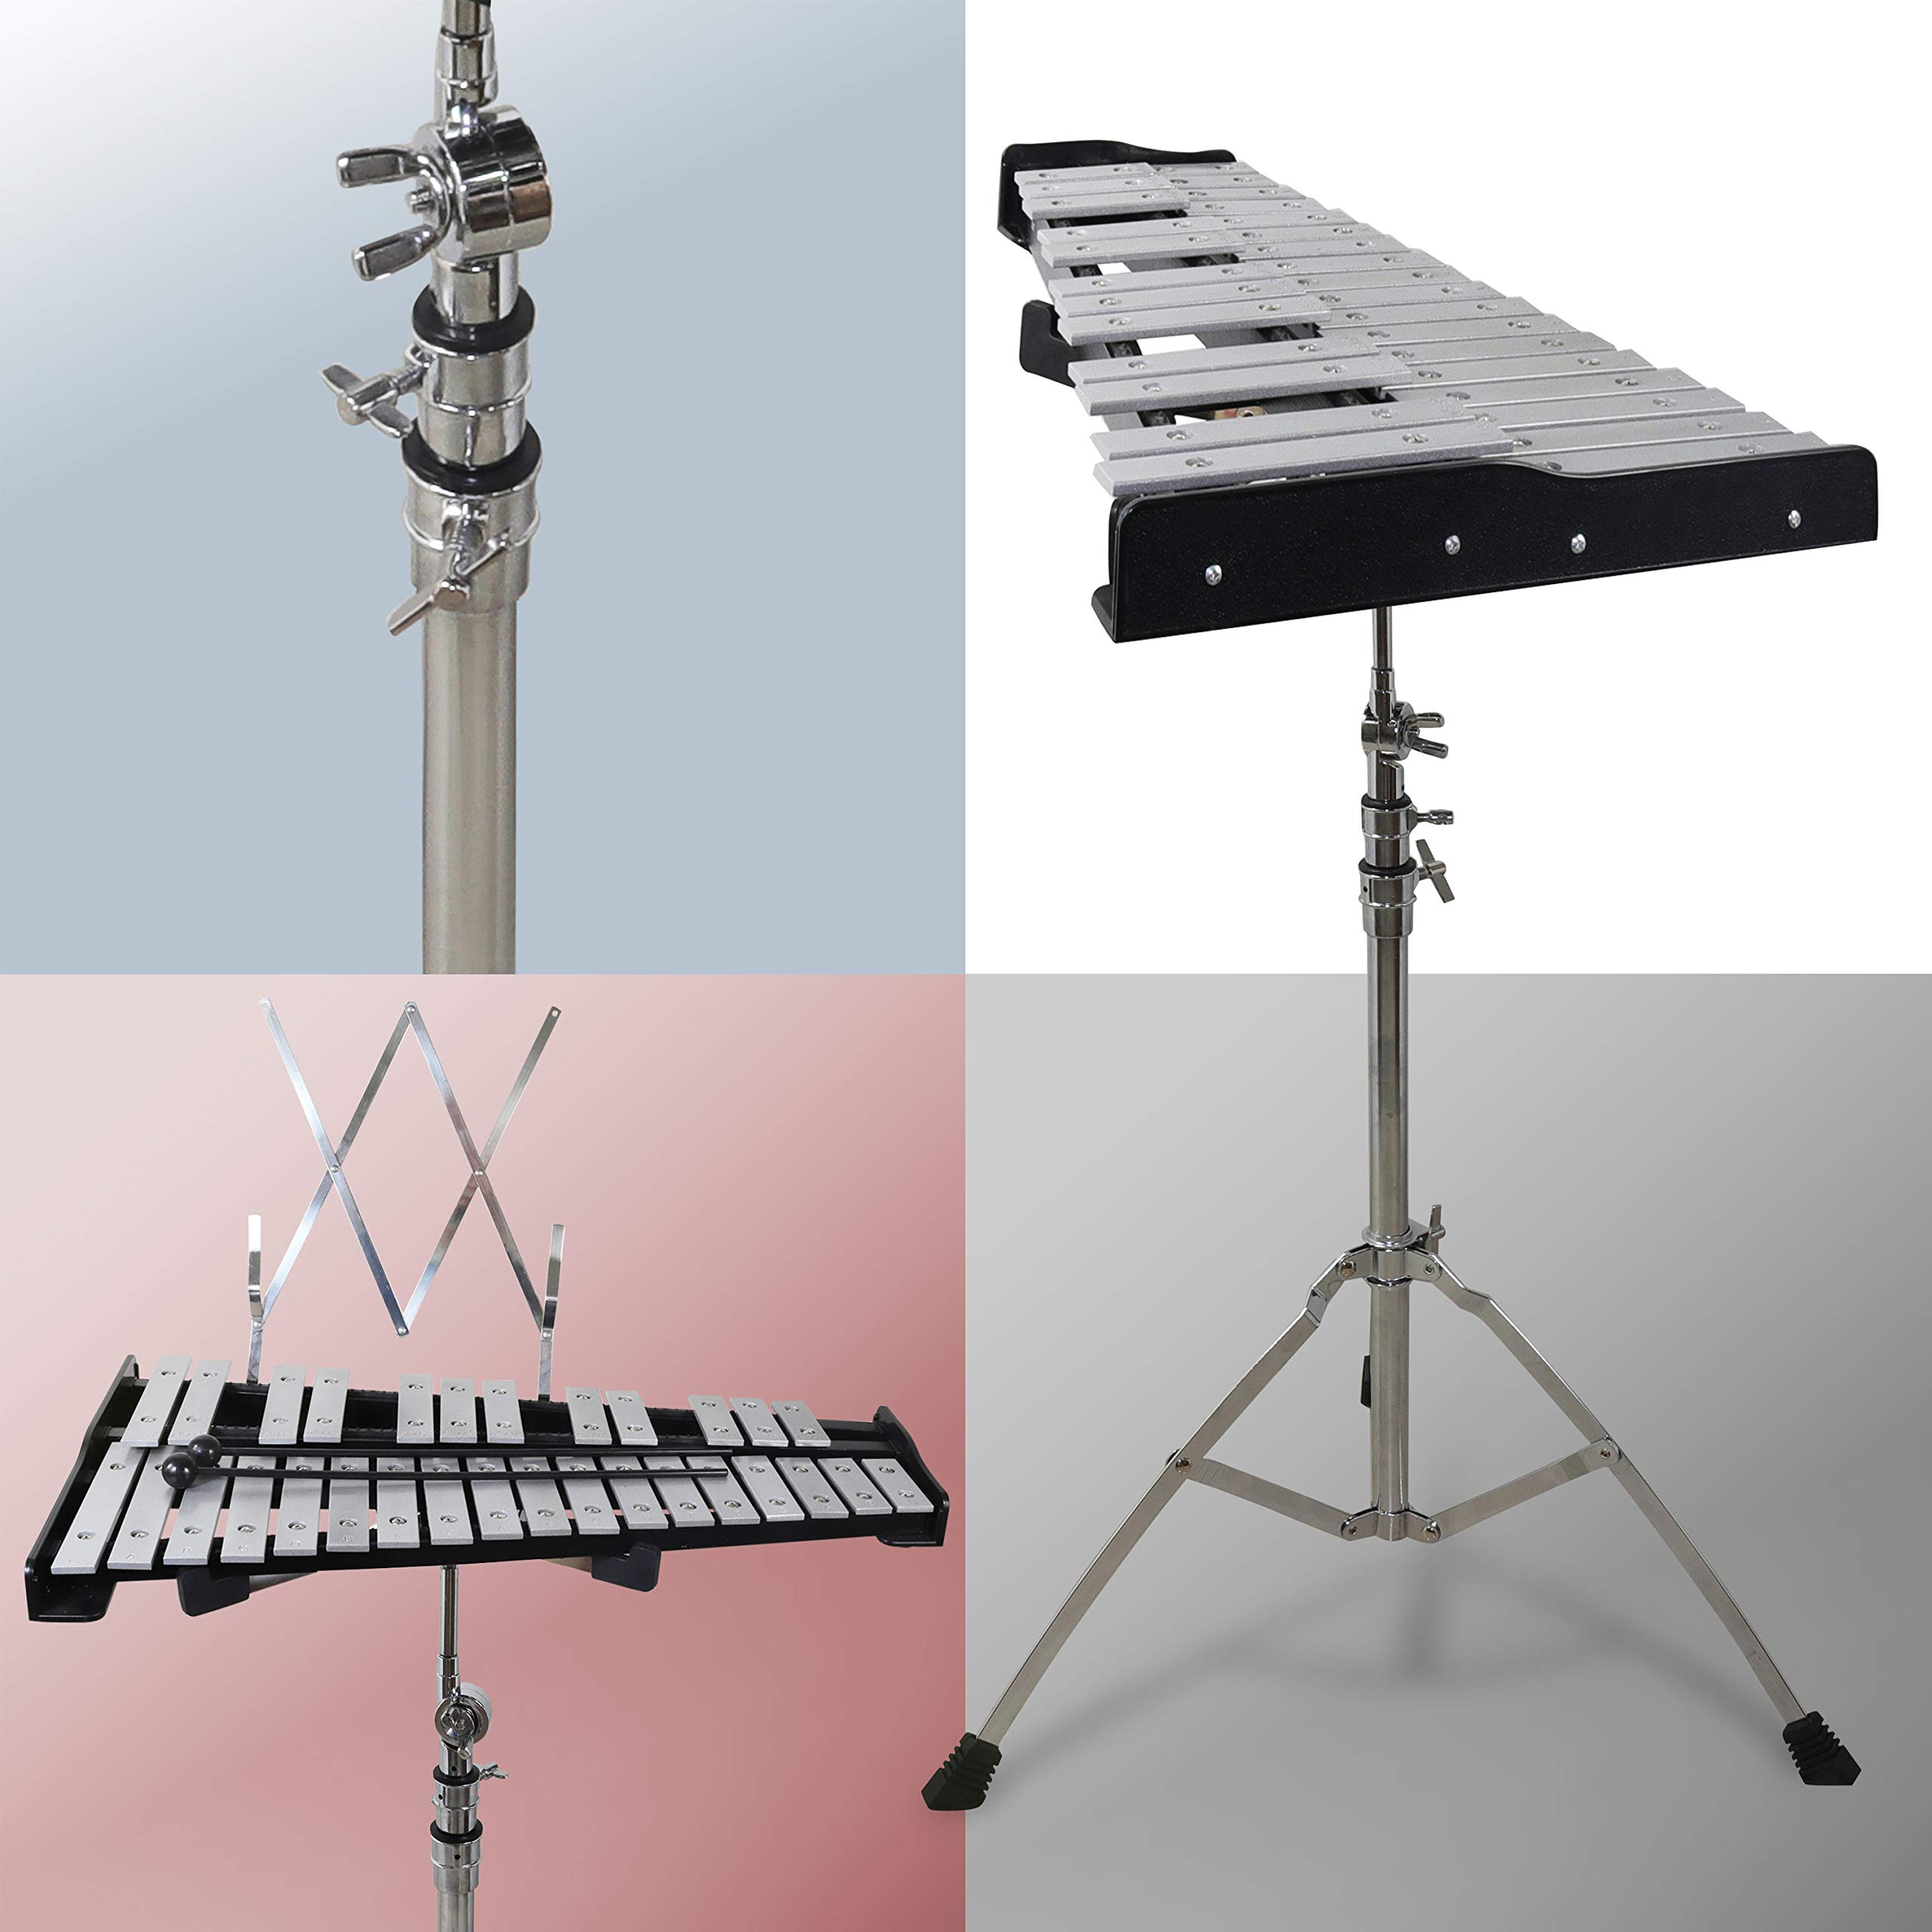 30 note Professional Glockenspiel - Metal Bell Kit Xylophone with Stand, Note Holder and Carrying Bag by inTemenos (Image #3)